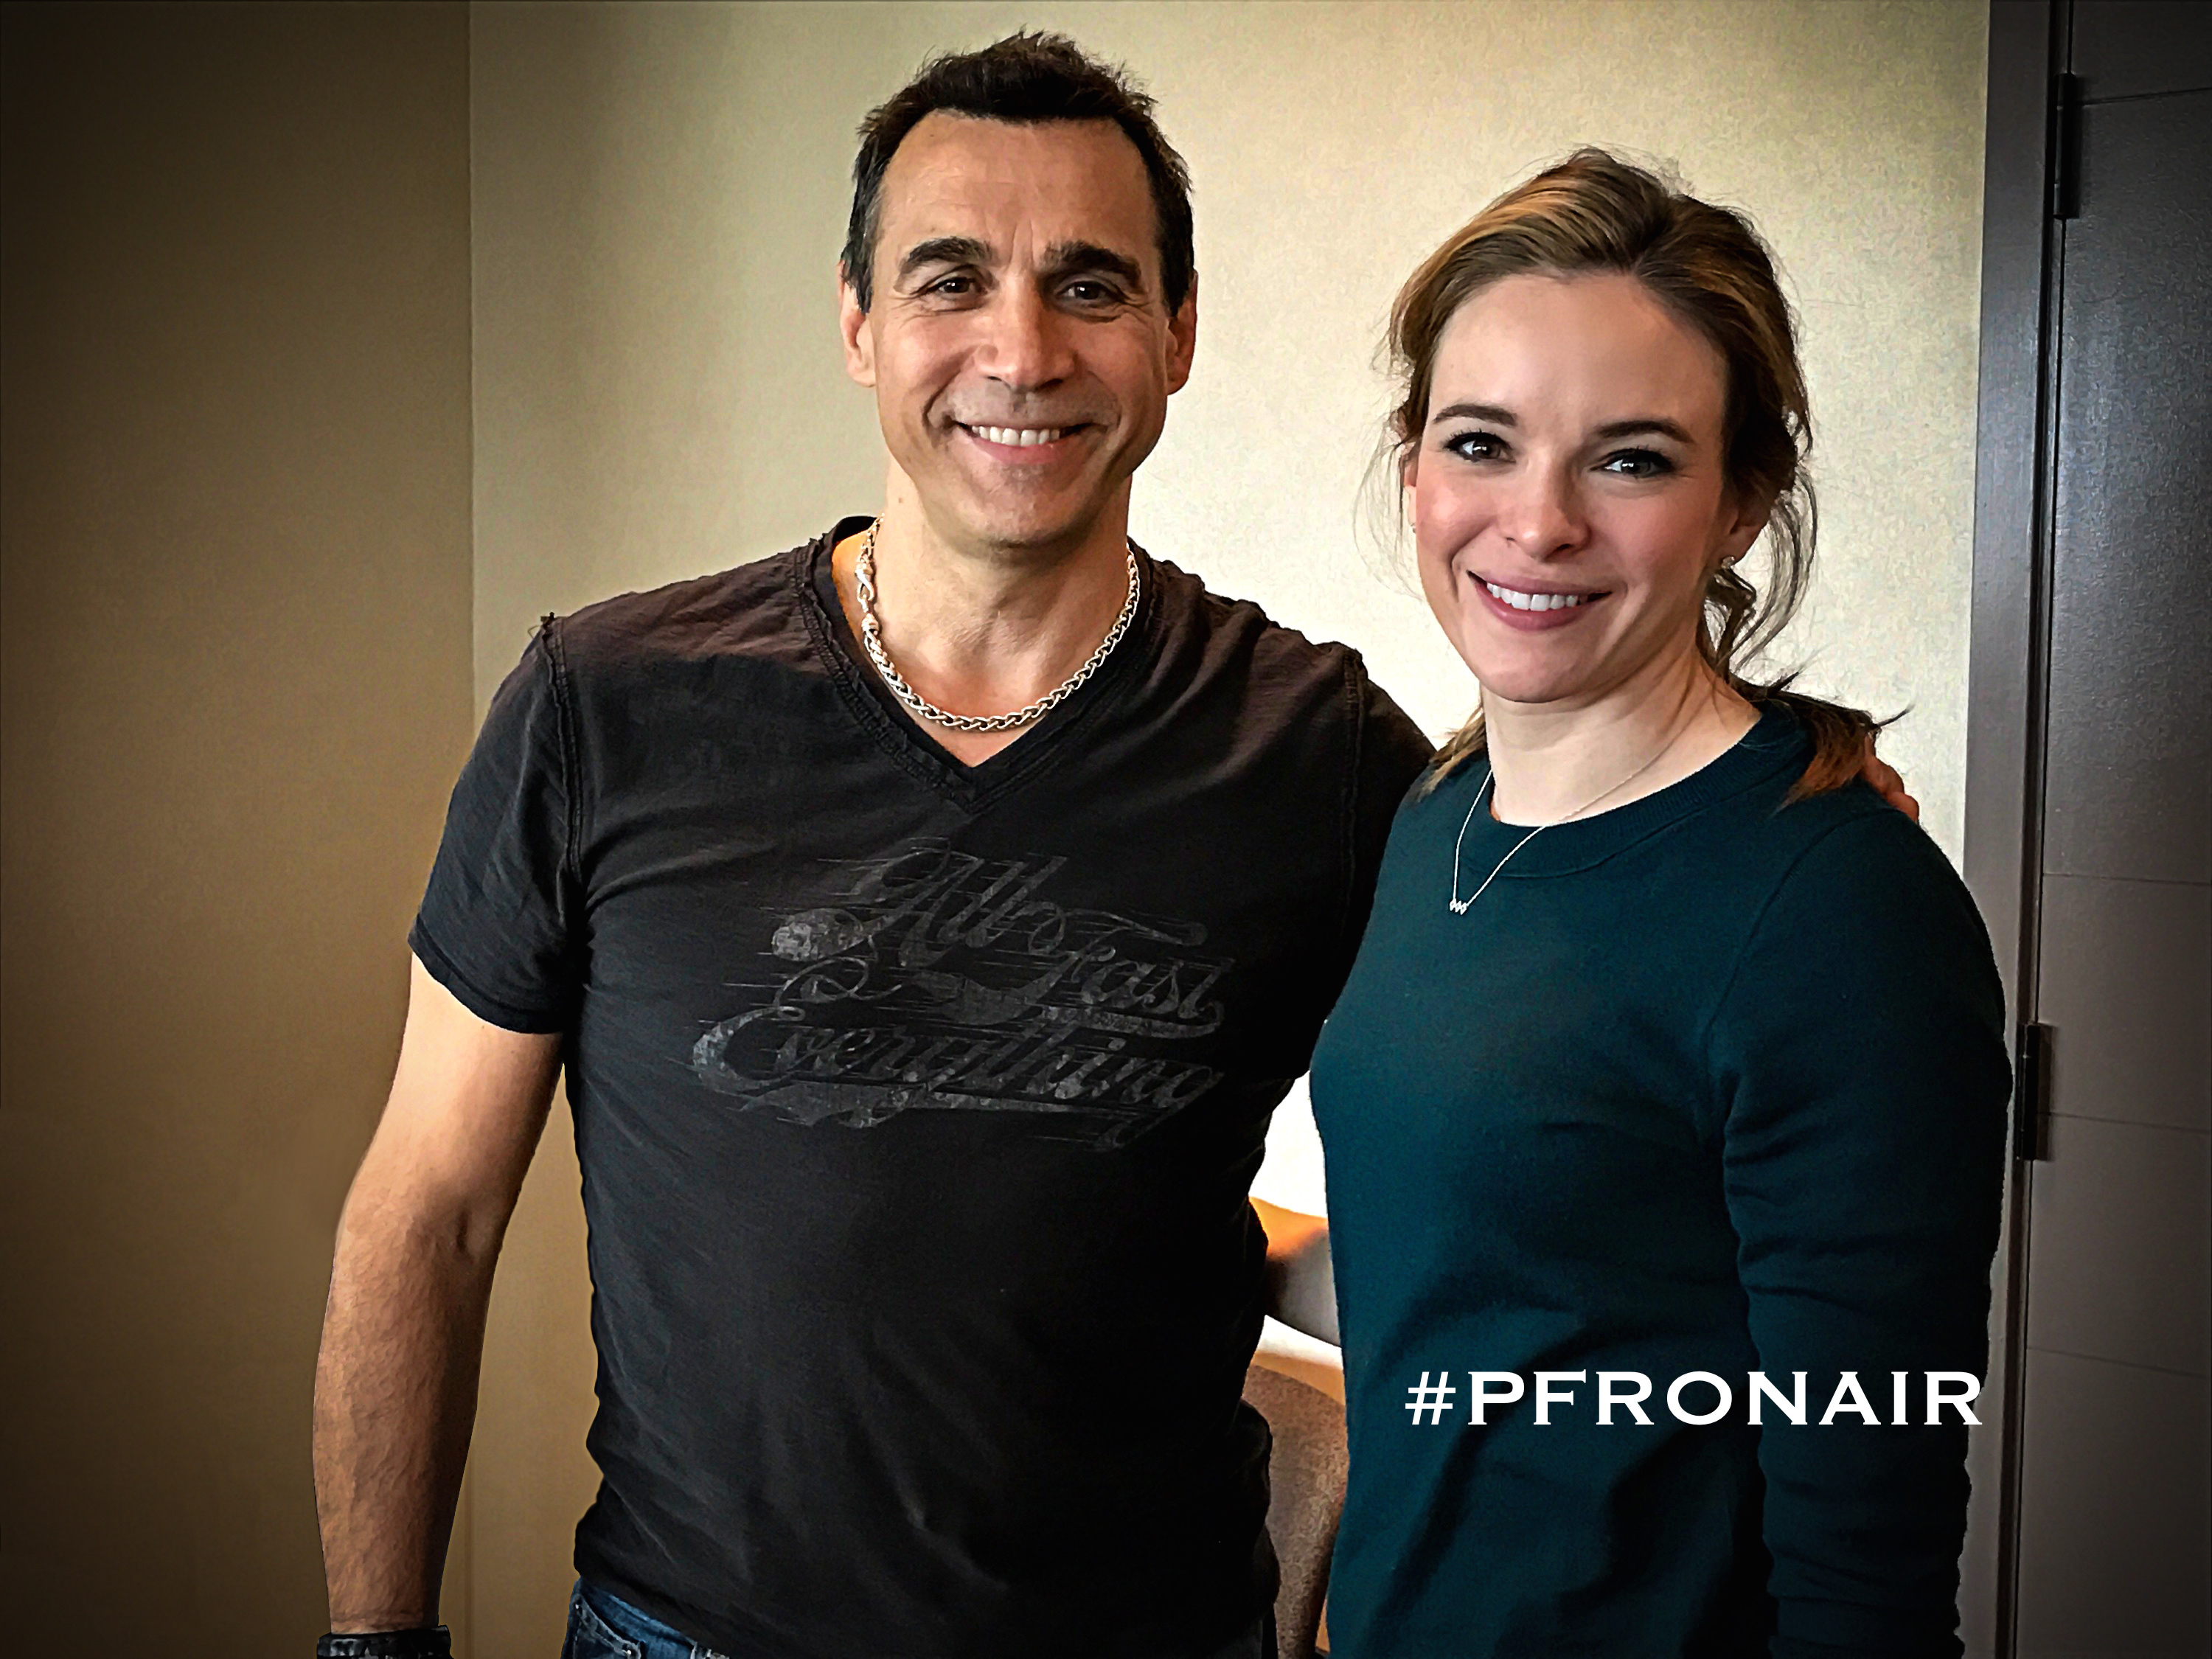 Adrian and Danielle Panabaker